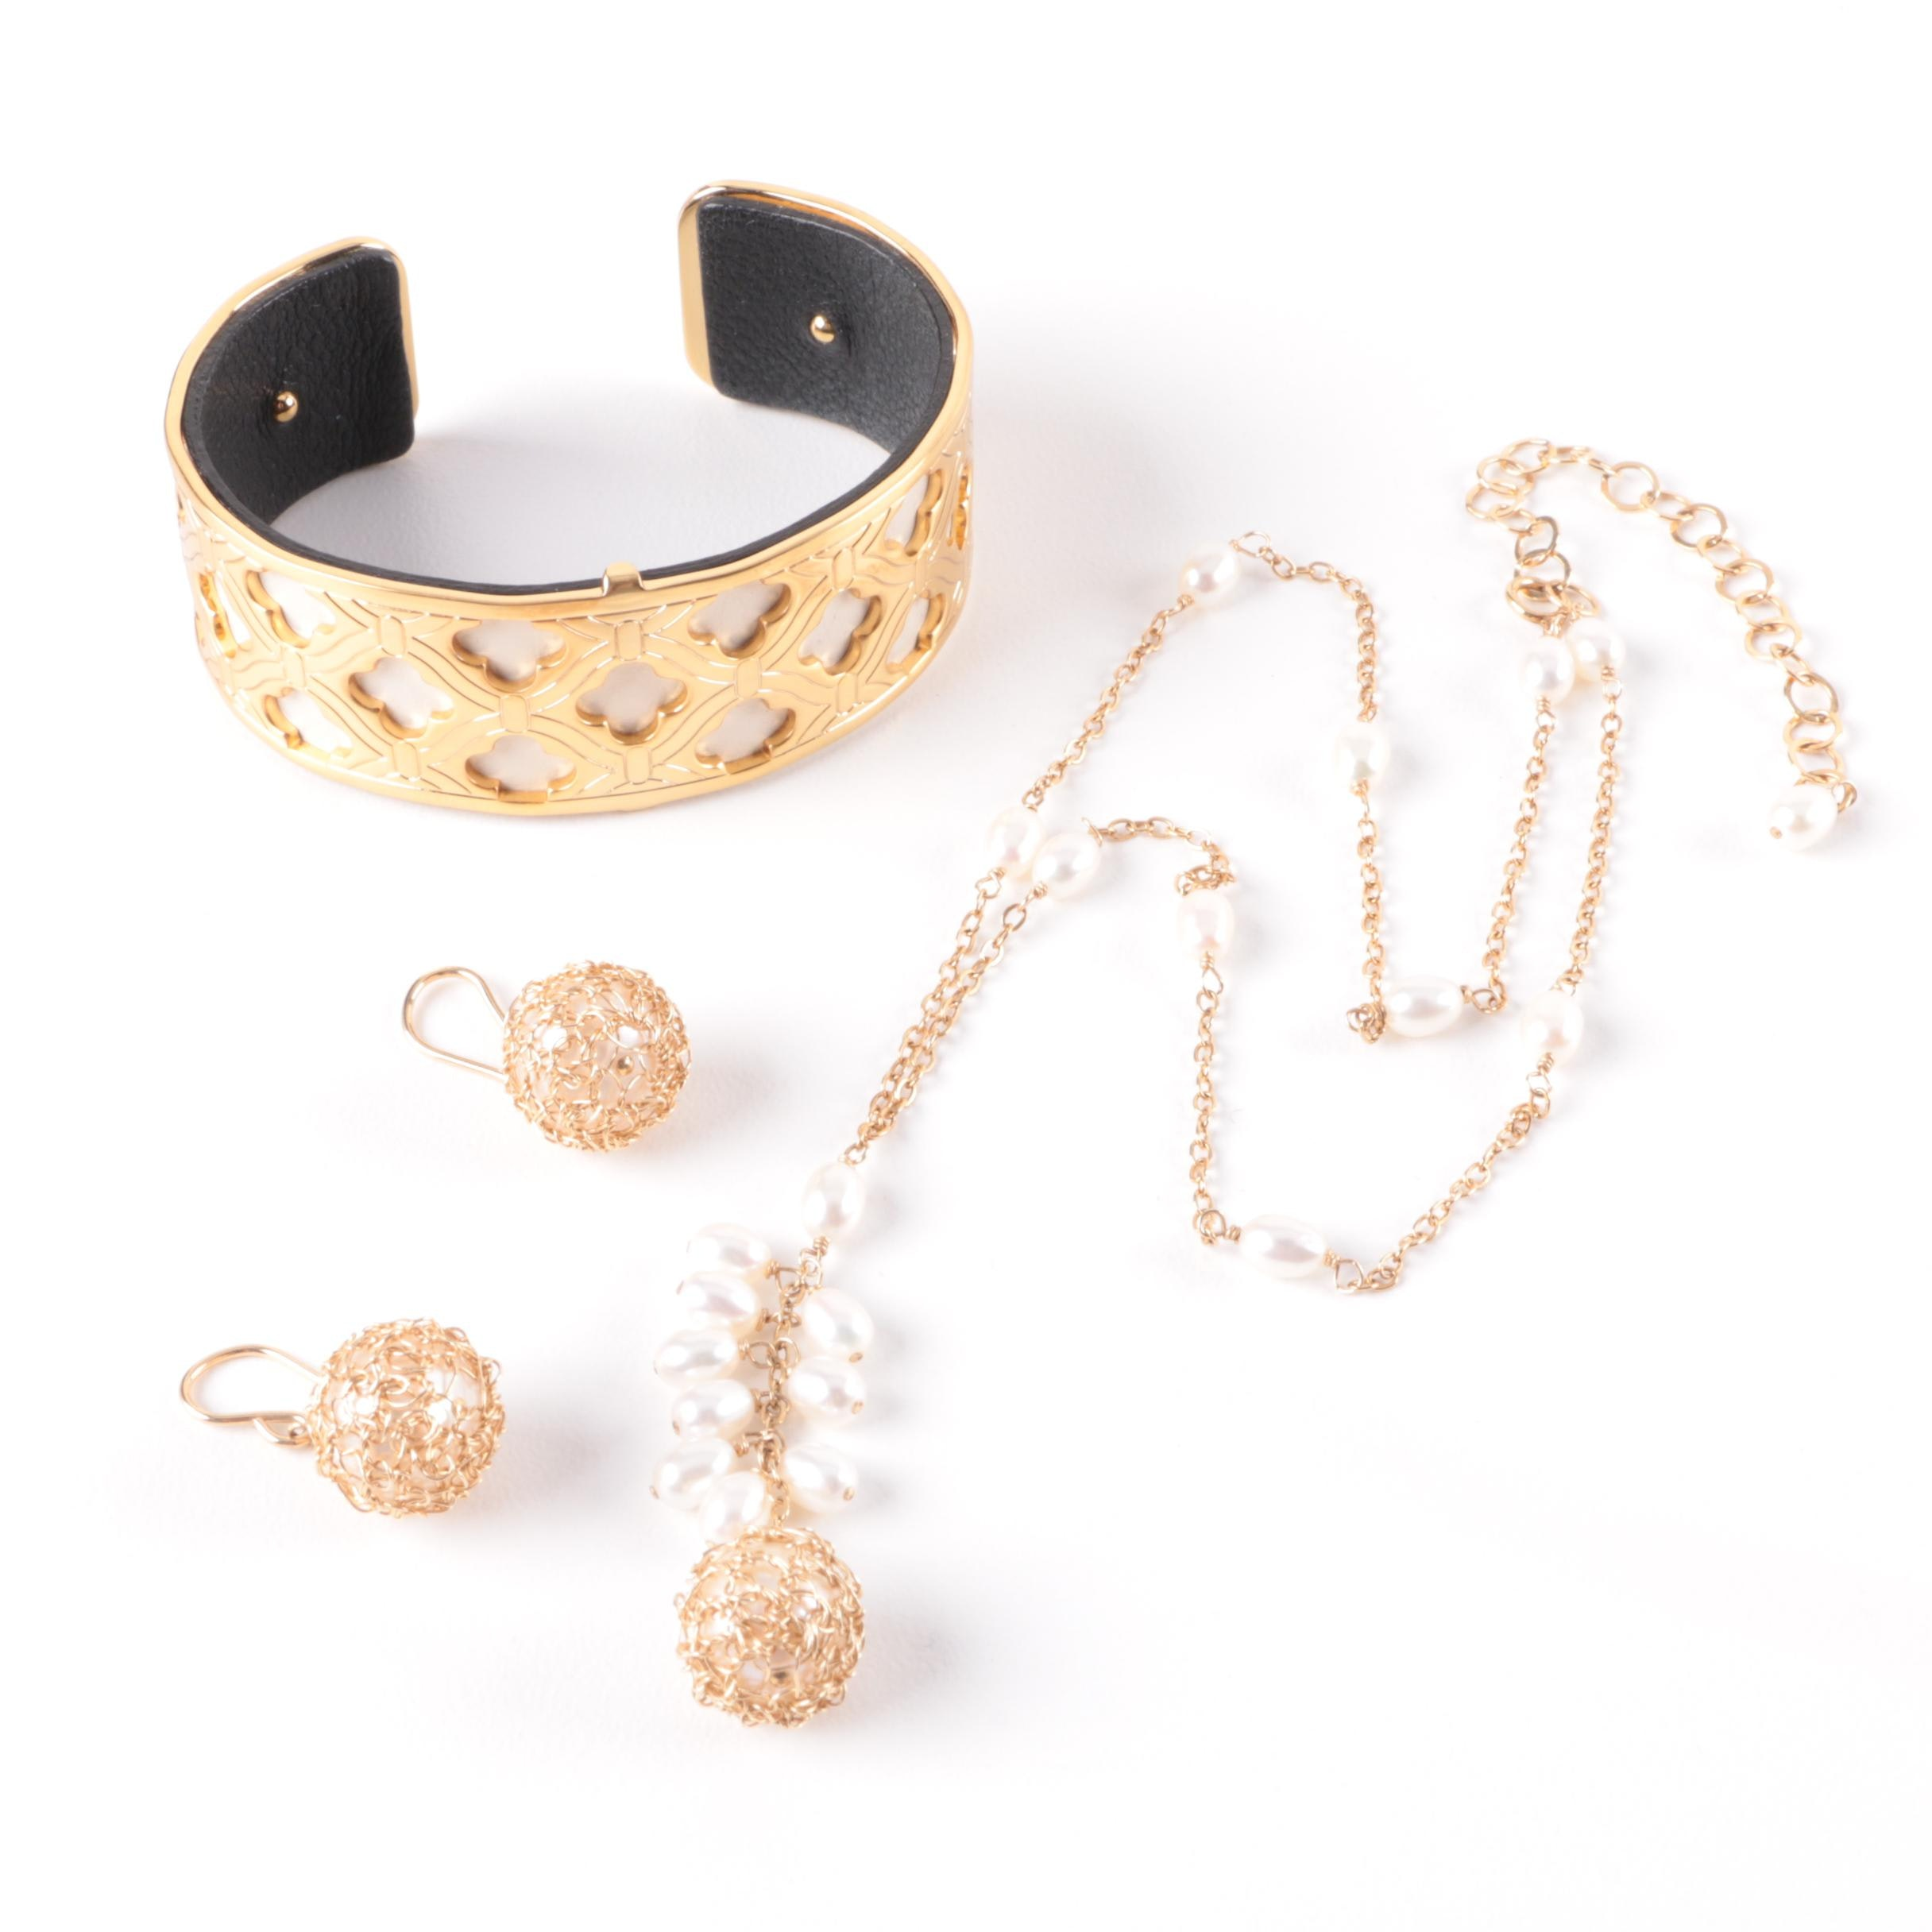 Assortment of Gold Filled, Leather and Cultured Pearl Jewelry Including Brighton